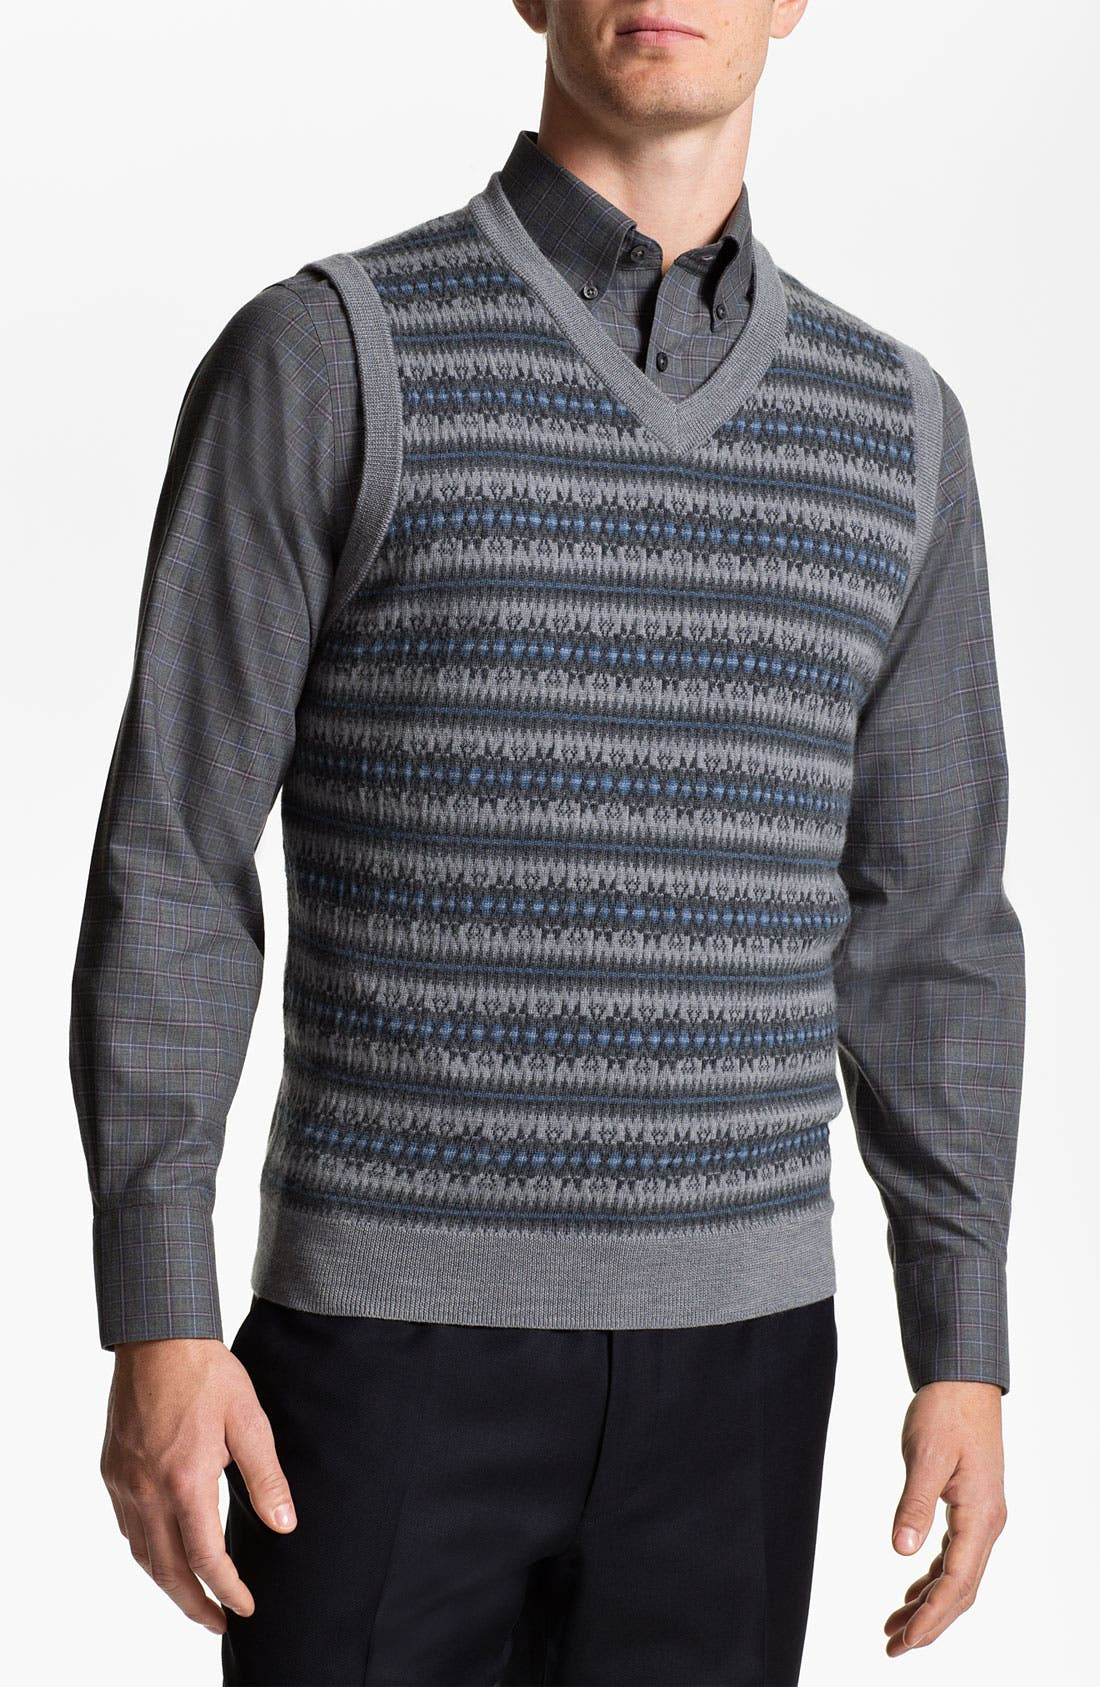 Alternate Image 1 Selected - Nordstrom Fair Isle Merino Wool Sweater Vest